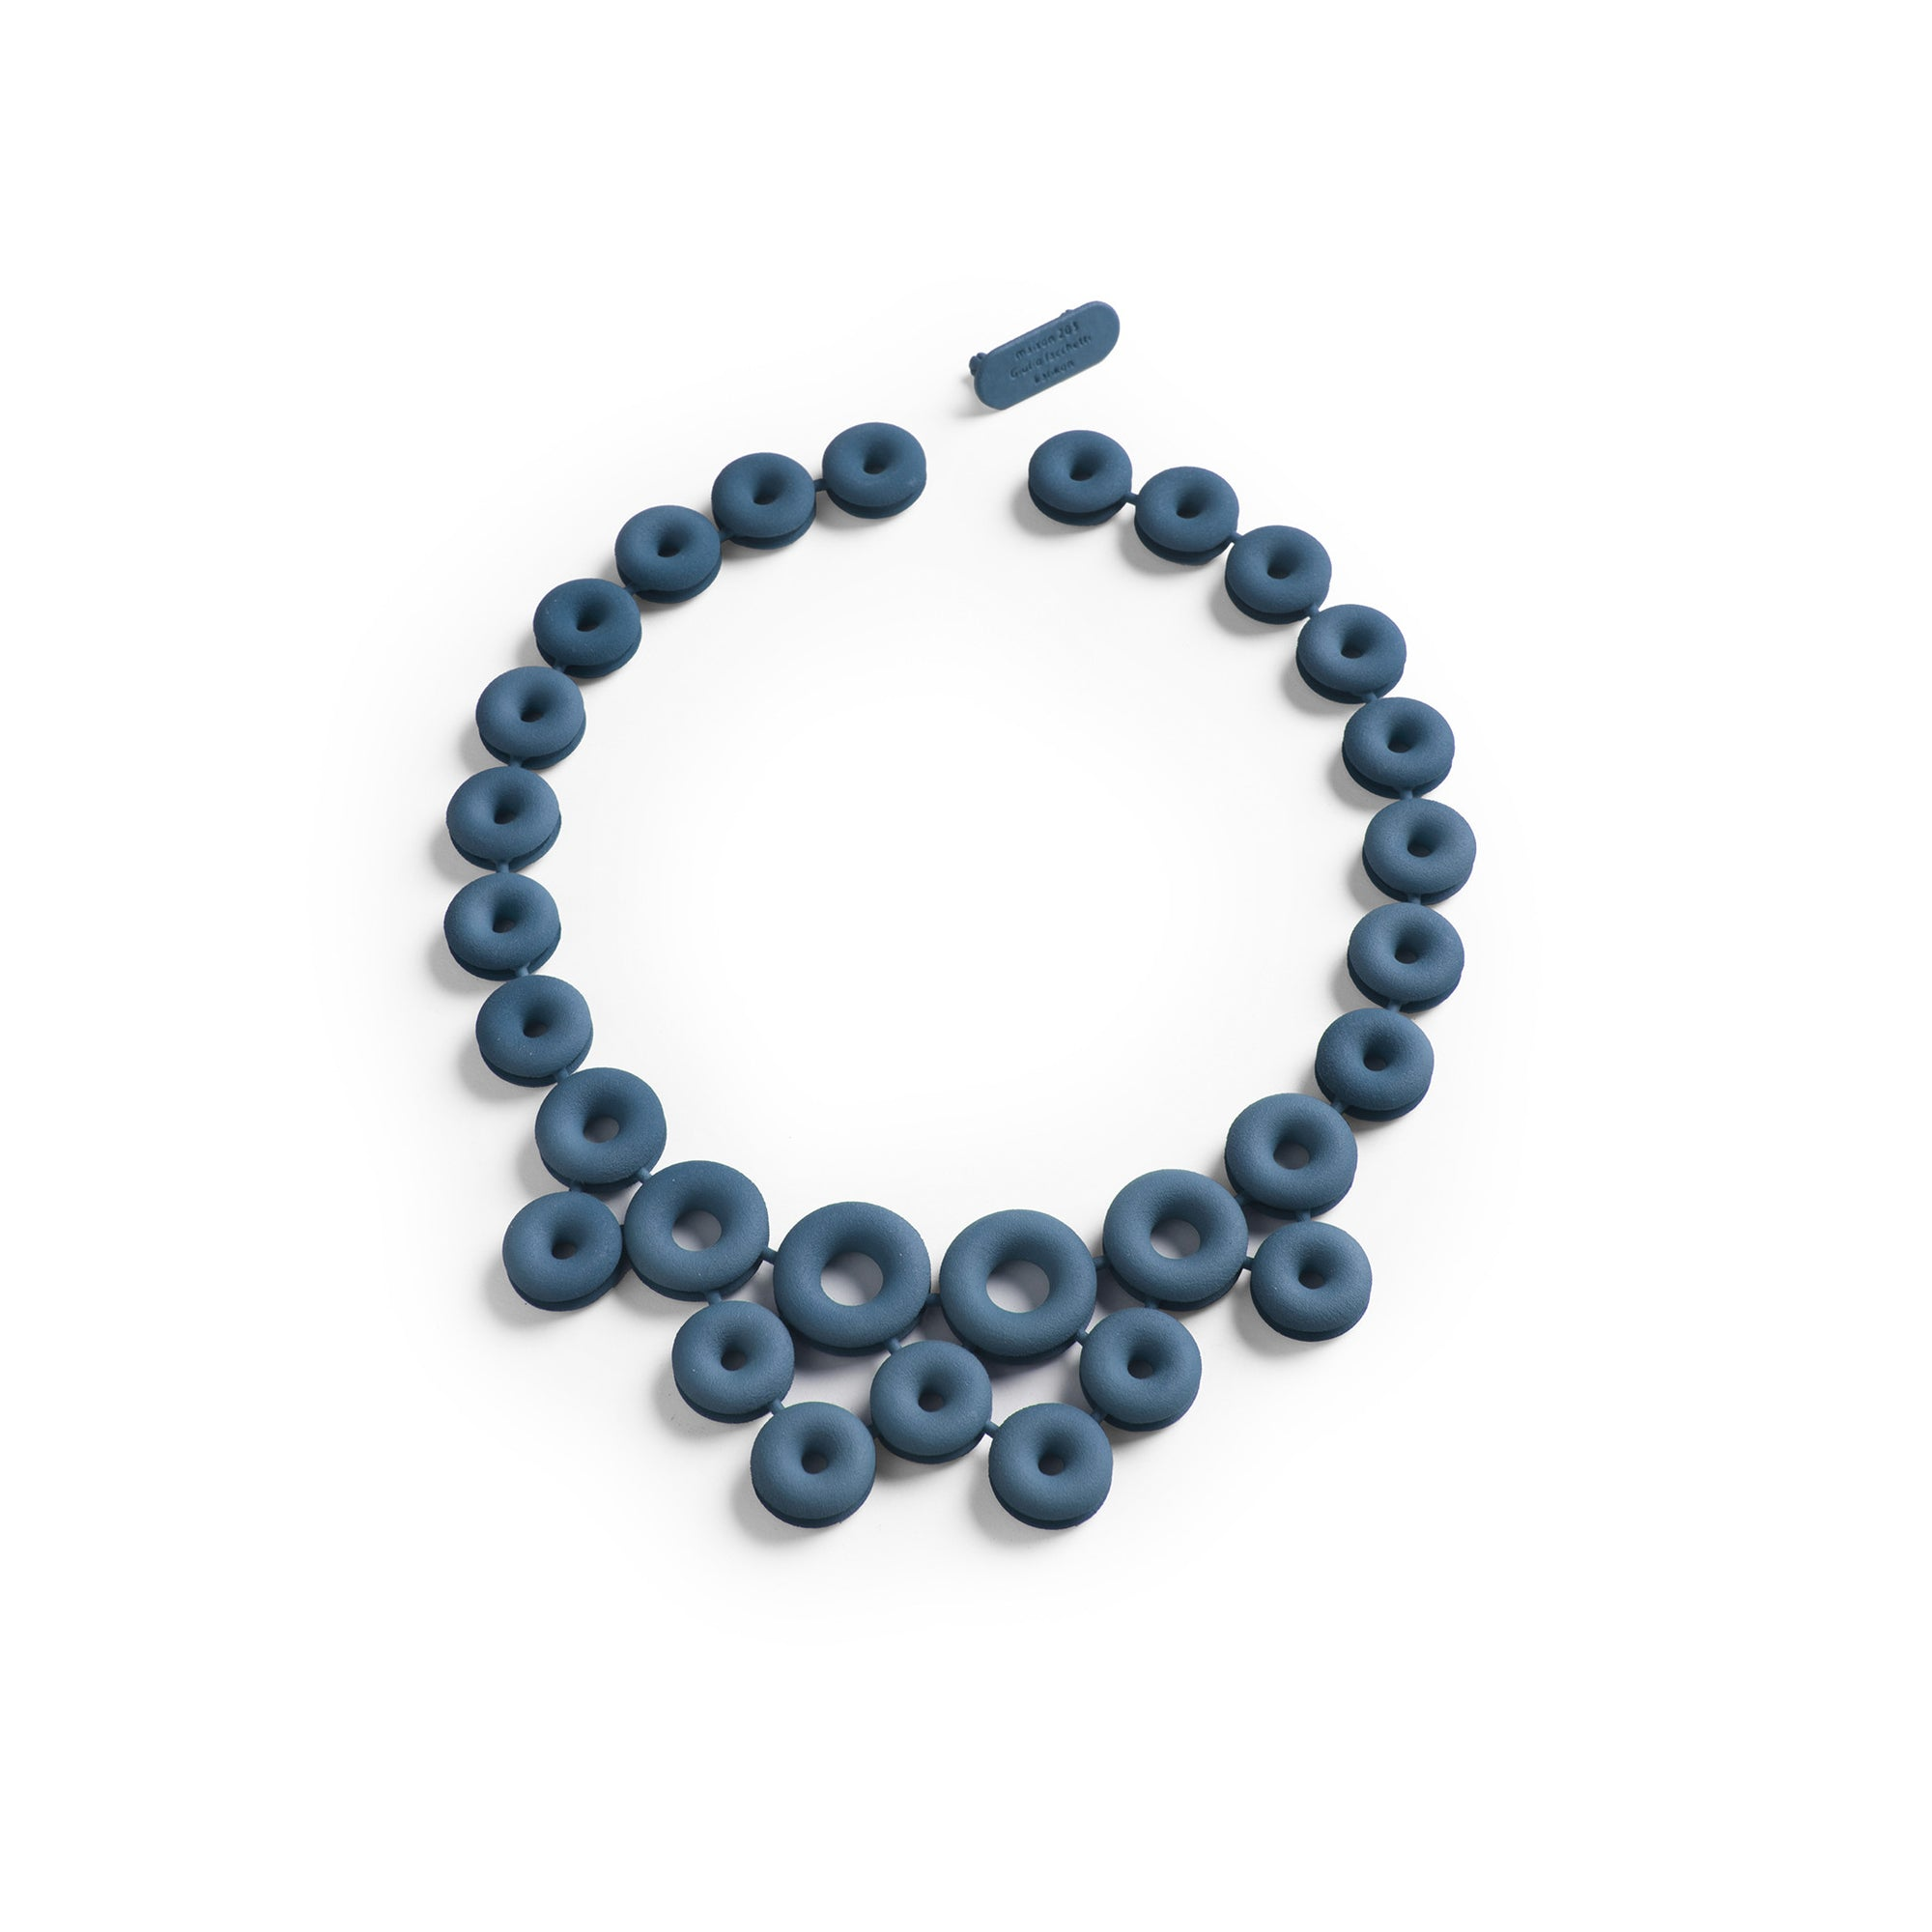 3D Printed Midnight Blue Necklace | Getty Store